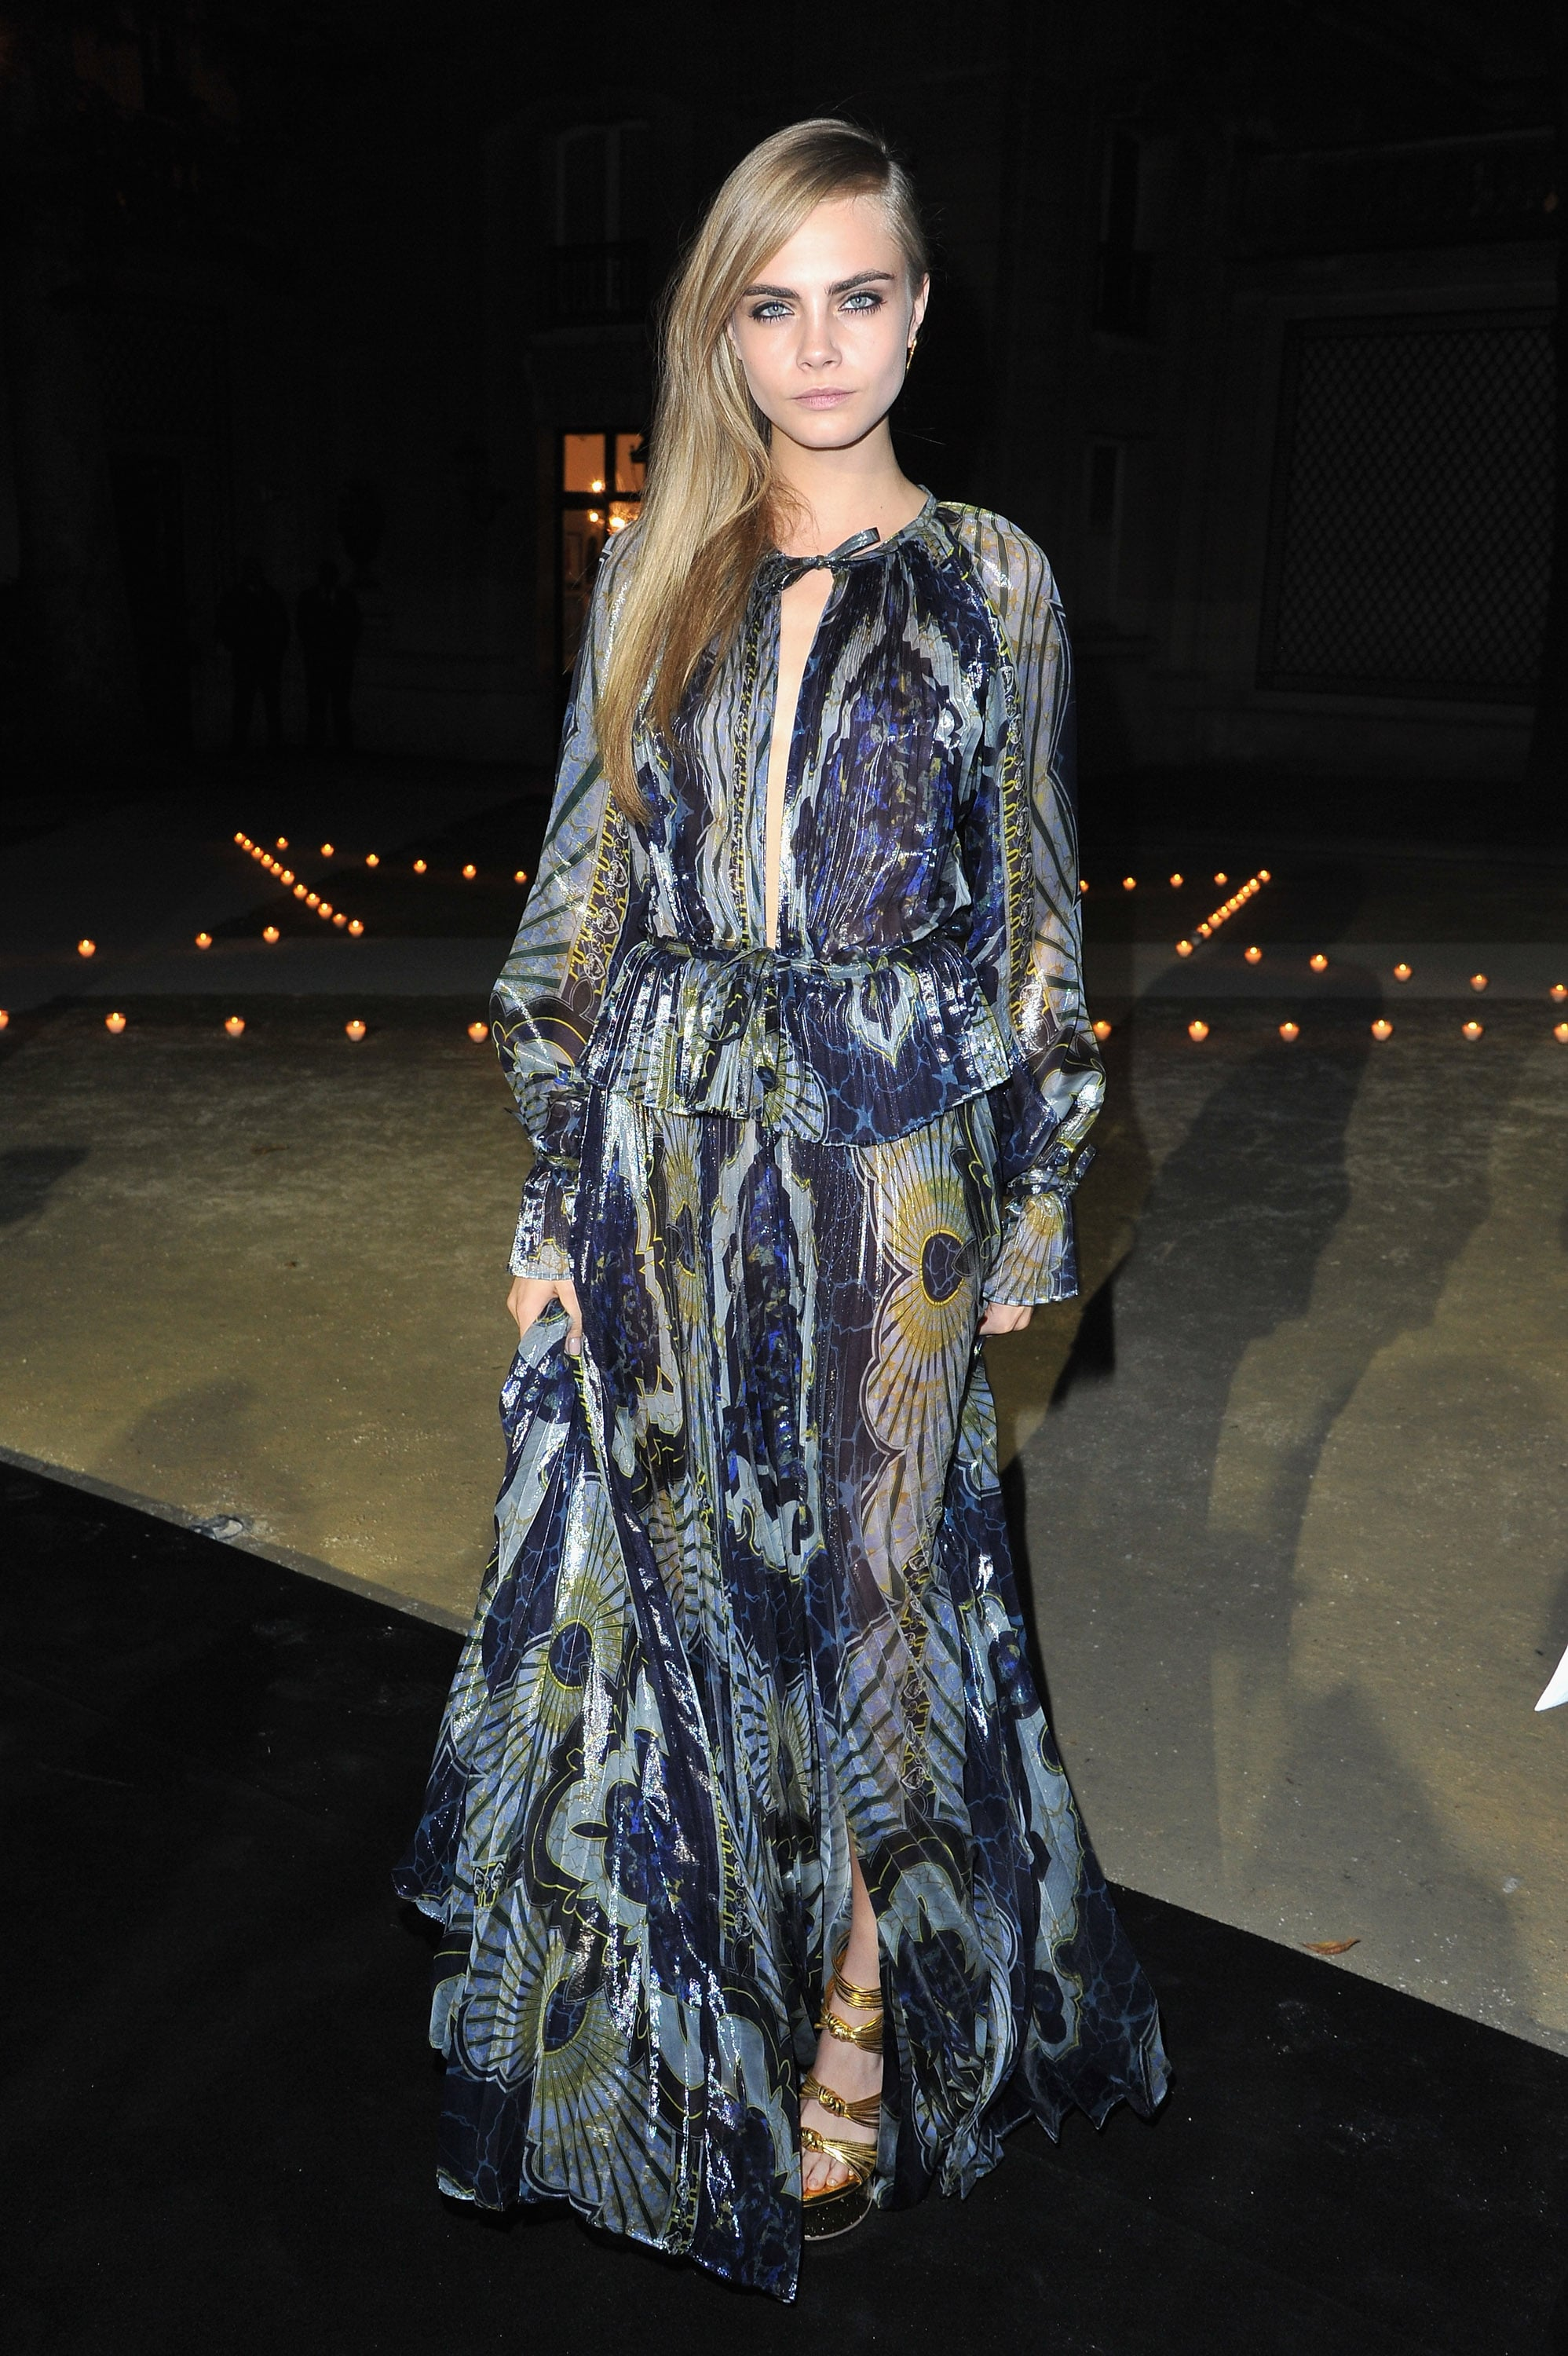 Cara Delevingne wore a floor-length printed and semisheer gown to the Carine Roitfeld for MAC party in Paris.